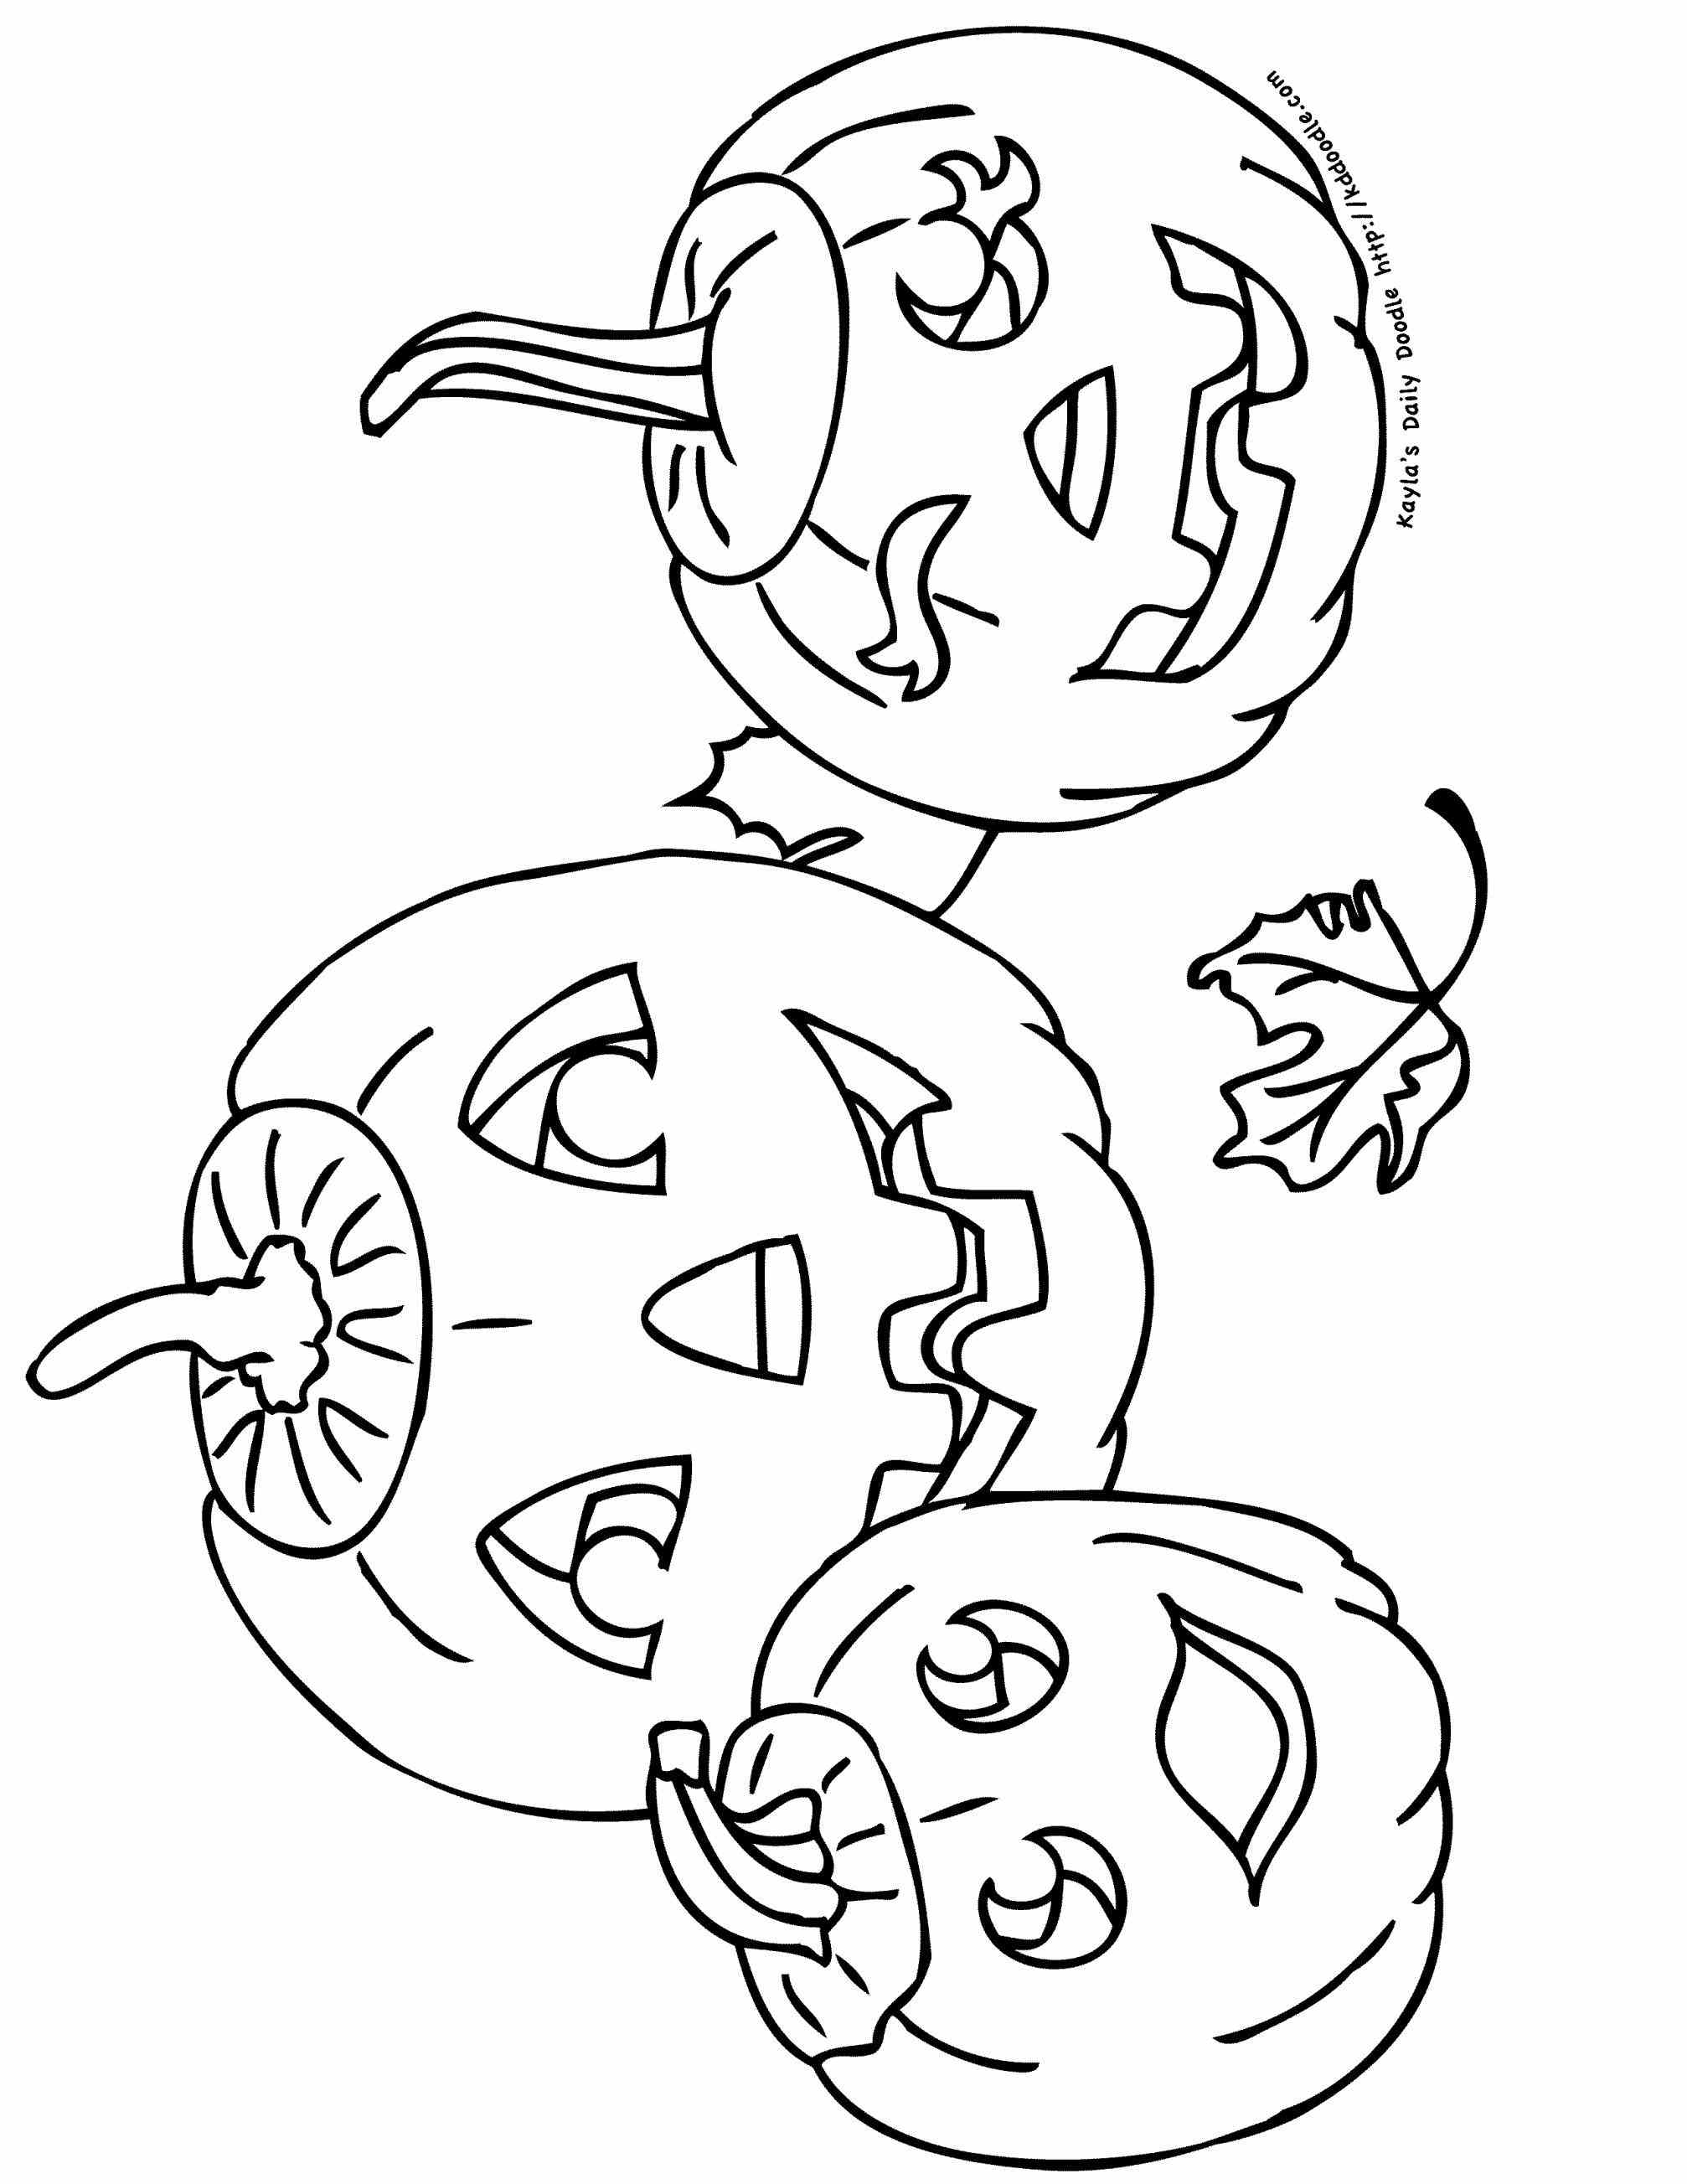 2014x2607 Coloring Pages Marvelous Halloween Coloring Pages Jack O Lantern